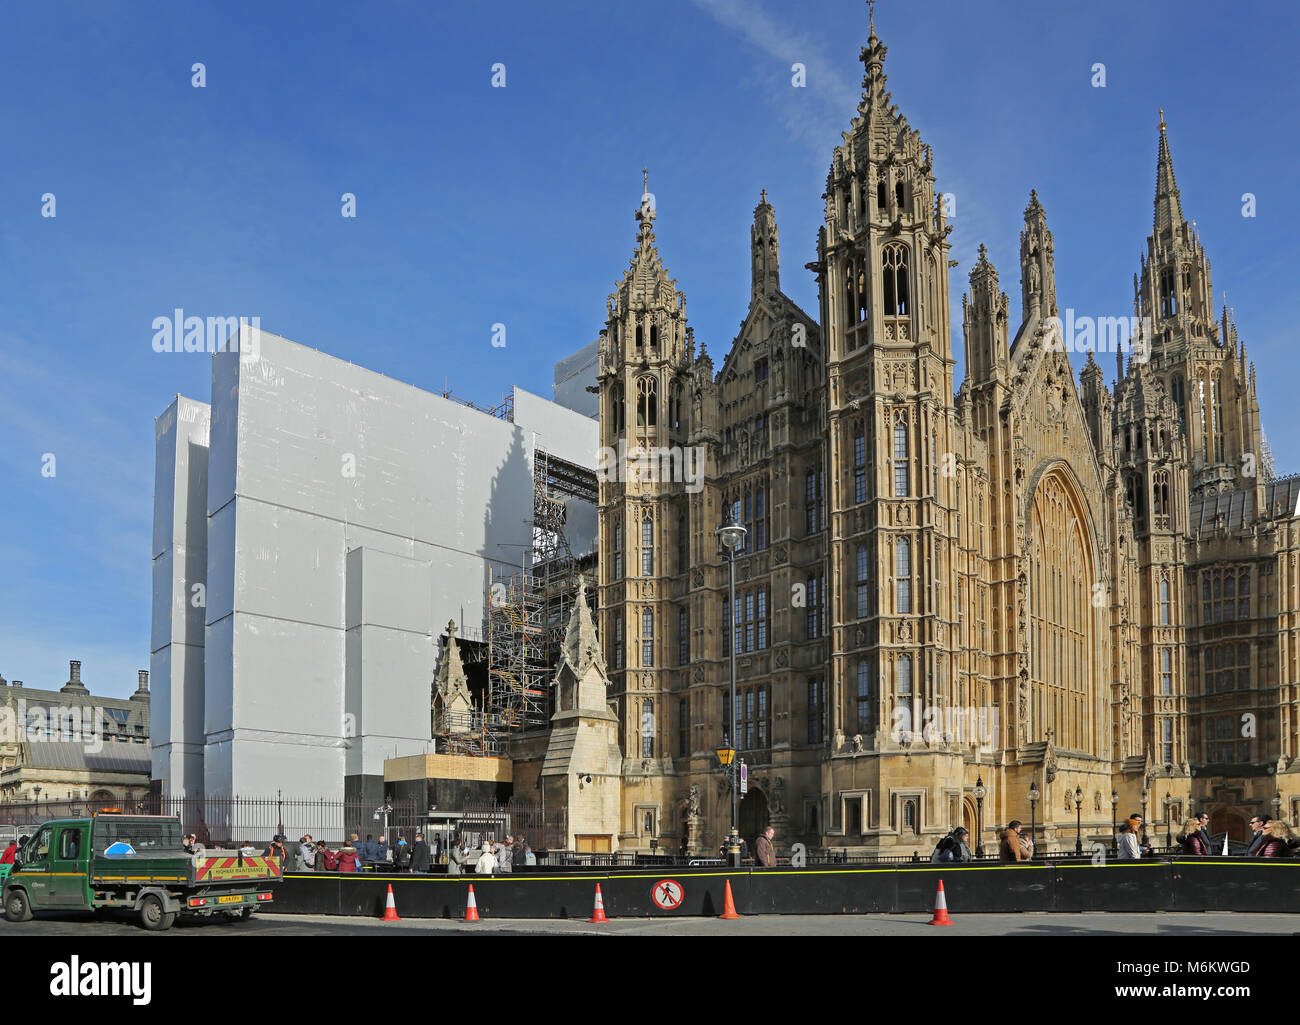 Scaffolding spans St Stephens Hall, part of the Palace of Westminster, and Houses of Parliament, London, UK. Part Stock Photo